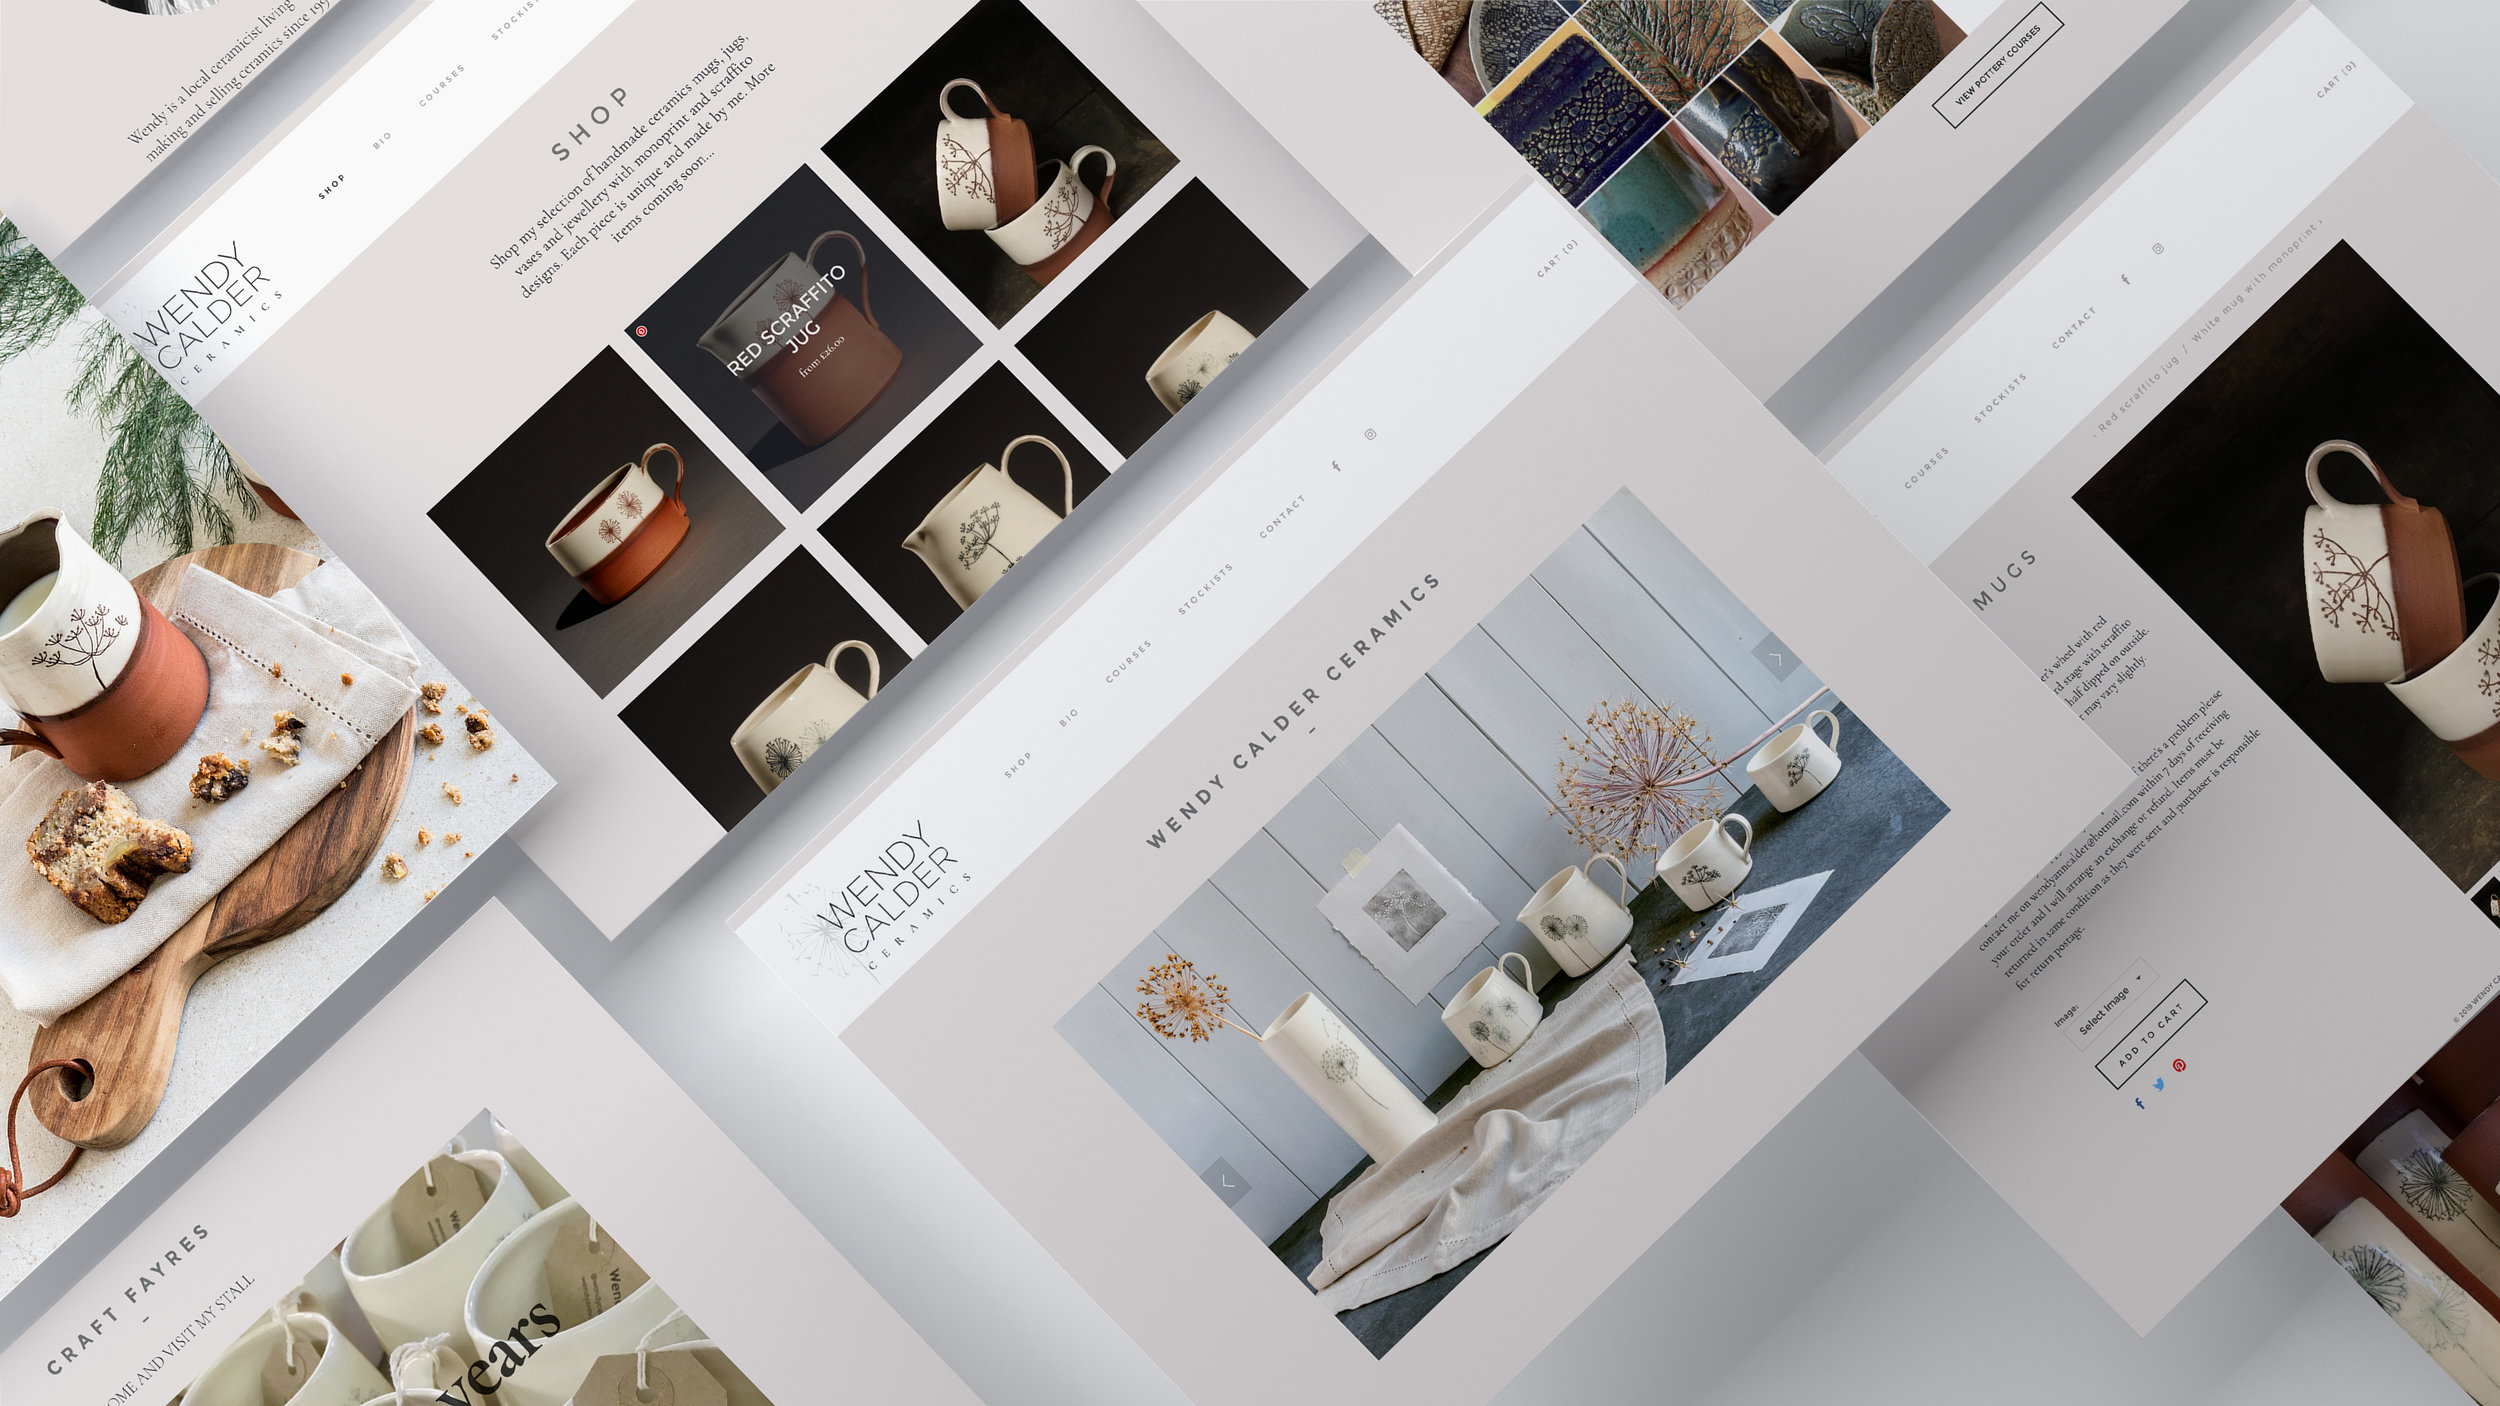 "<strong>Wendy Calder Ceramics__</strong><p>The art of good homeware<br><a href=""/wendy-calder-ceramics"">View case study →</a></p>"